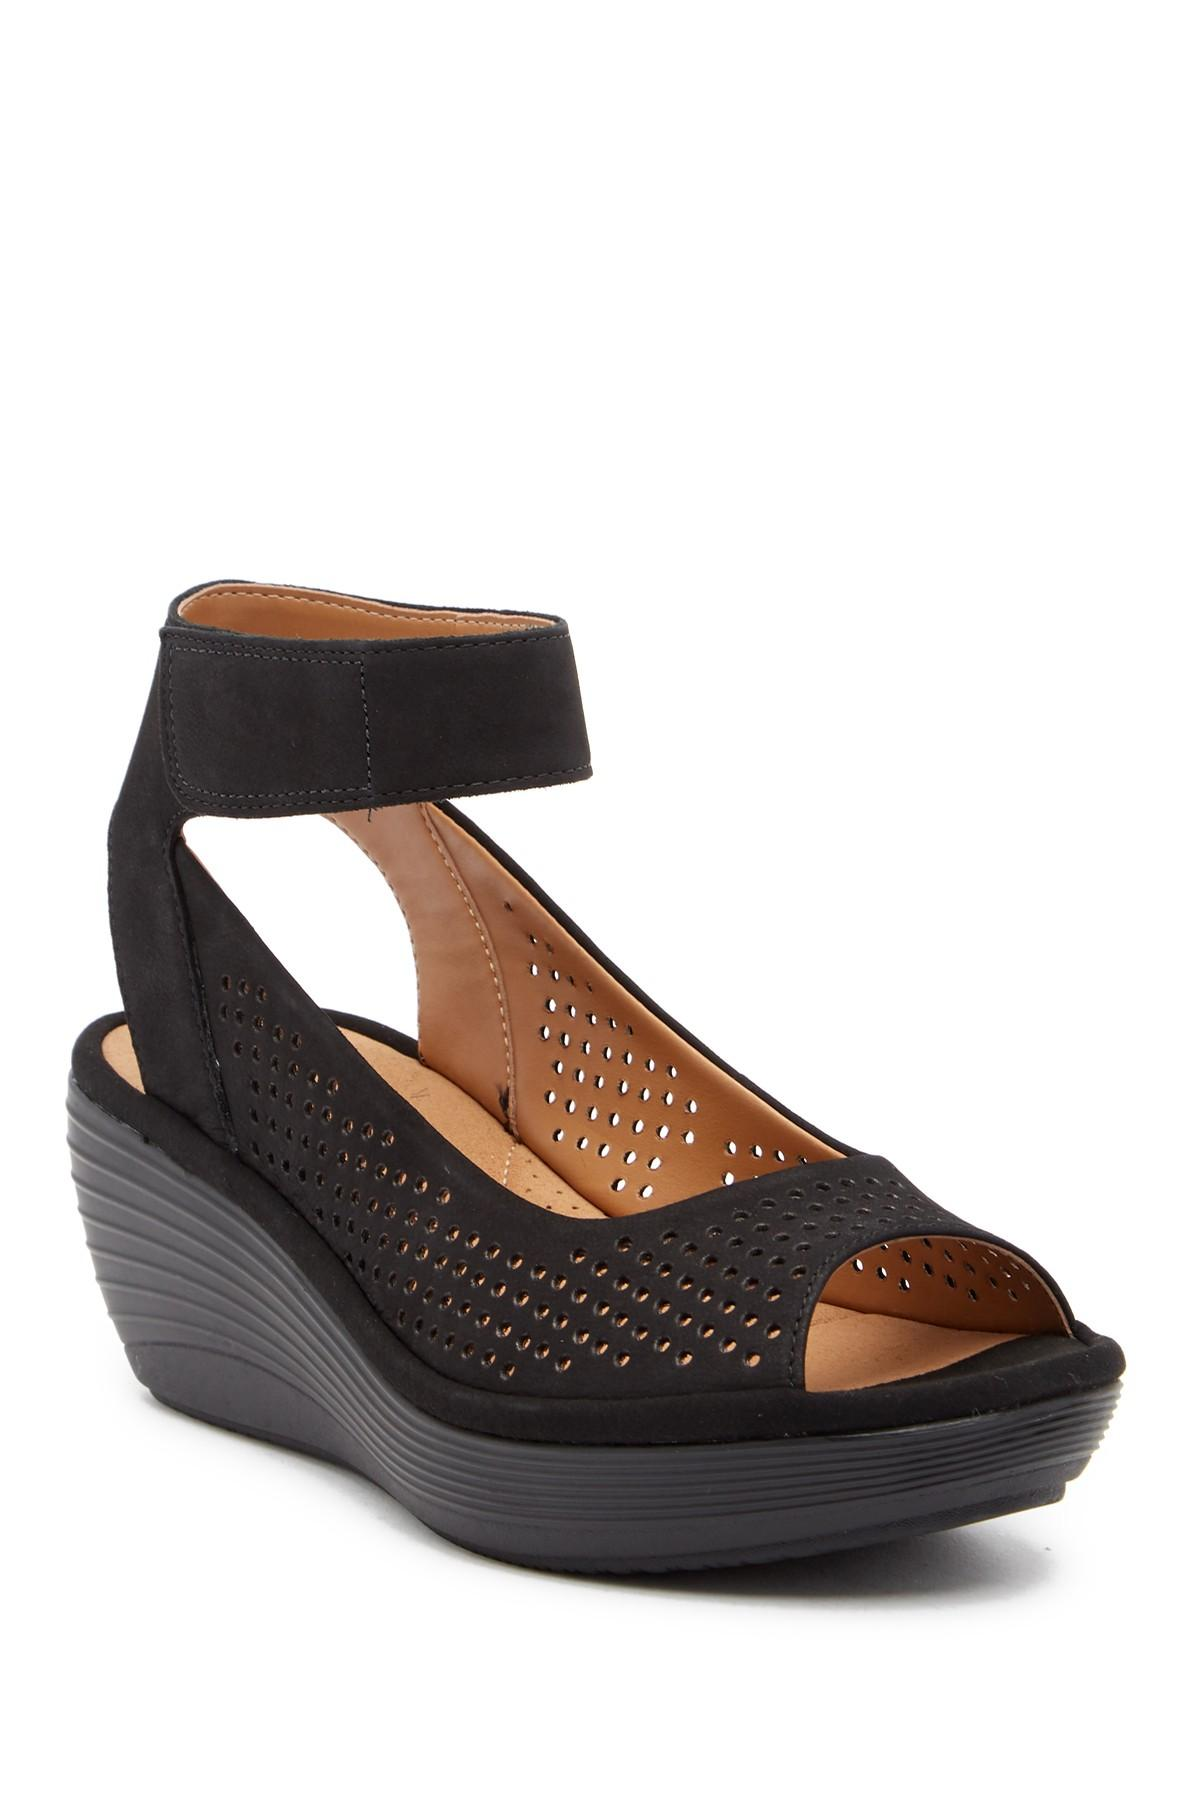 9b5c7fc1588 Lyst - Clarks Reedly Salene Wedge Sandal - Wide Width Available in Black